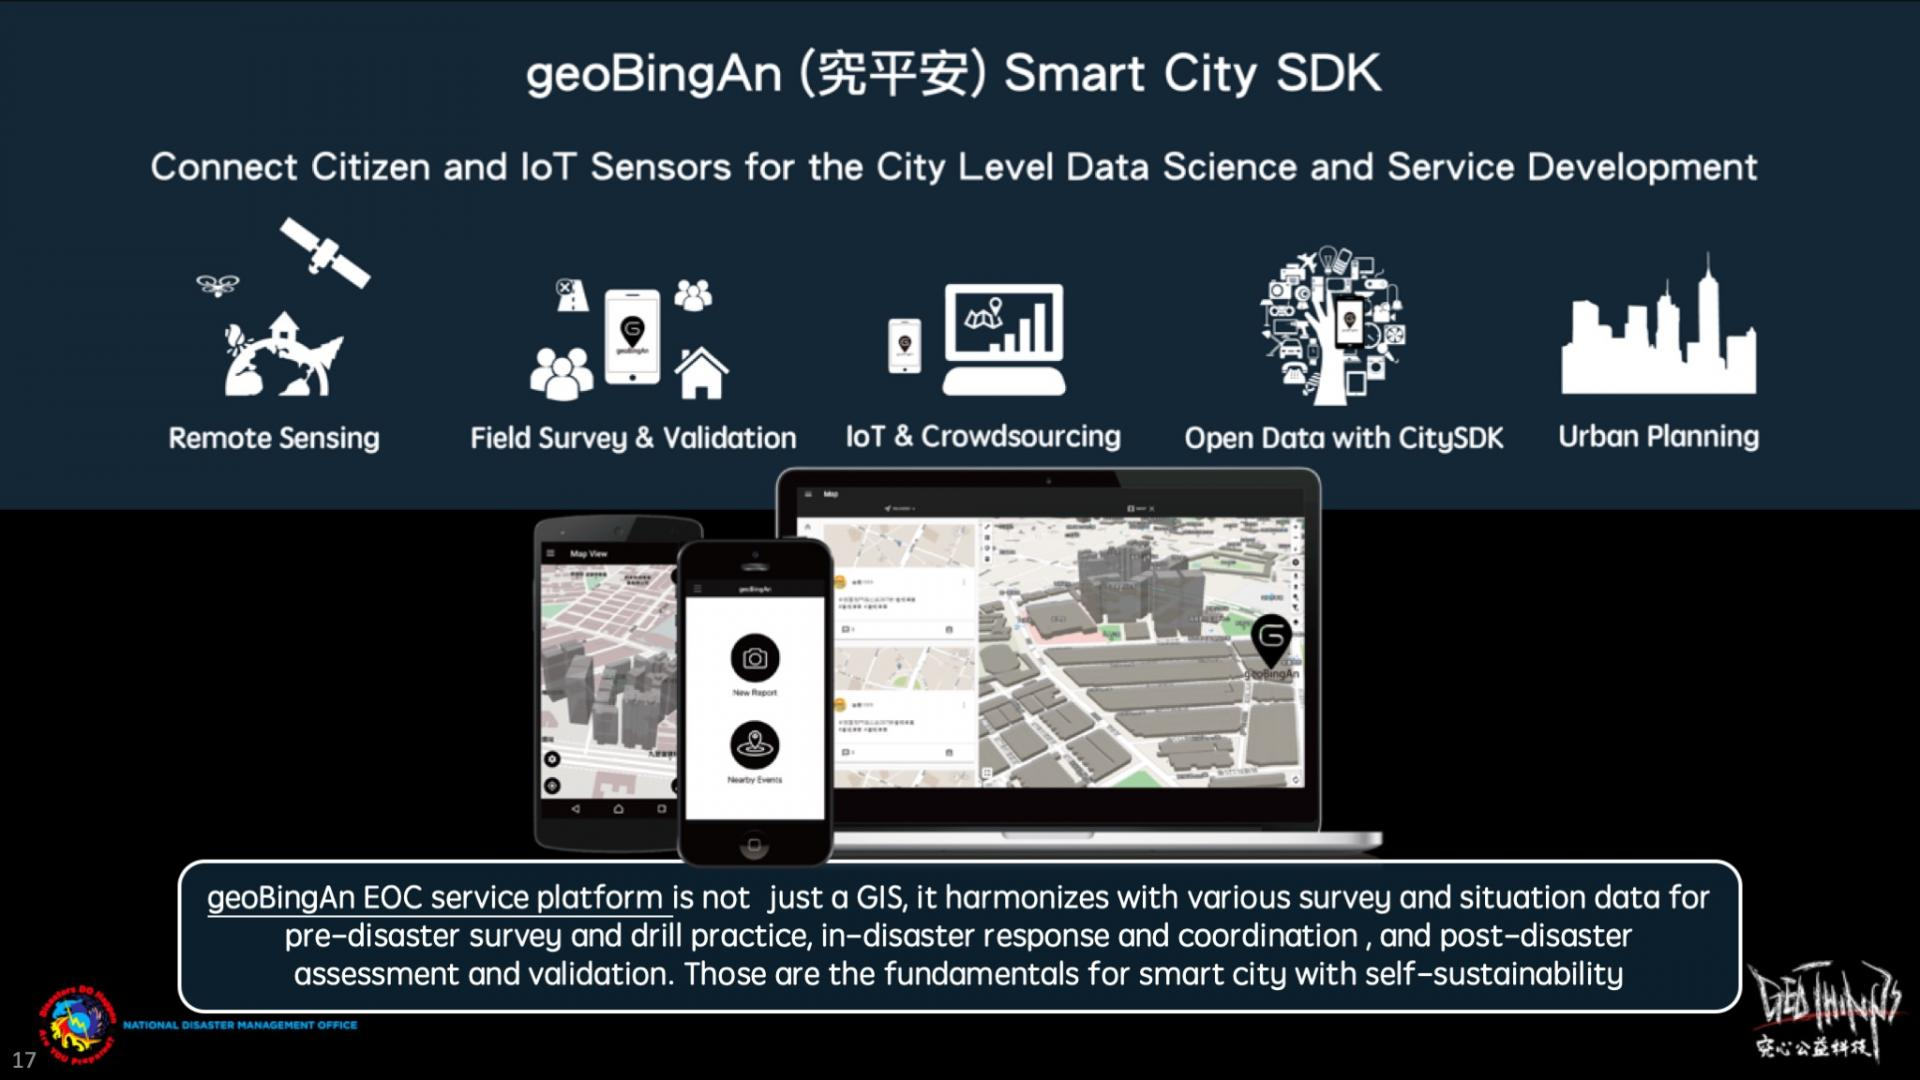 geoBingAn can be not only the EOC, but also the Smart City Service Development Kit platform for urban planning!